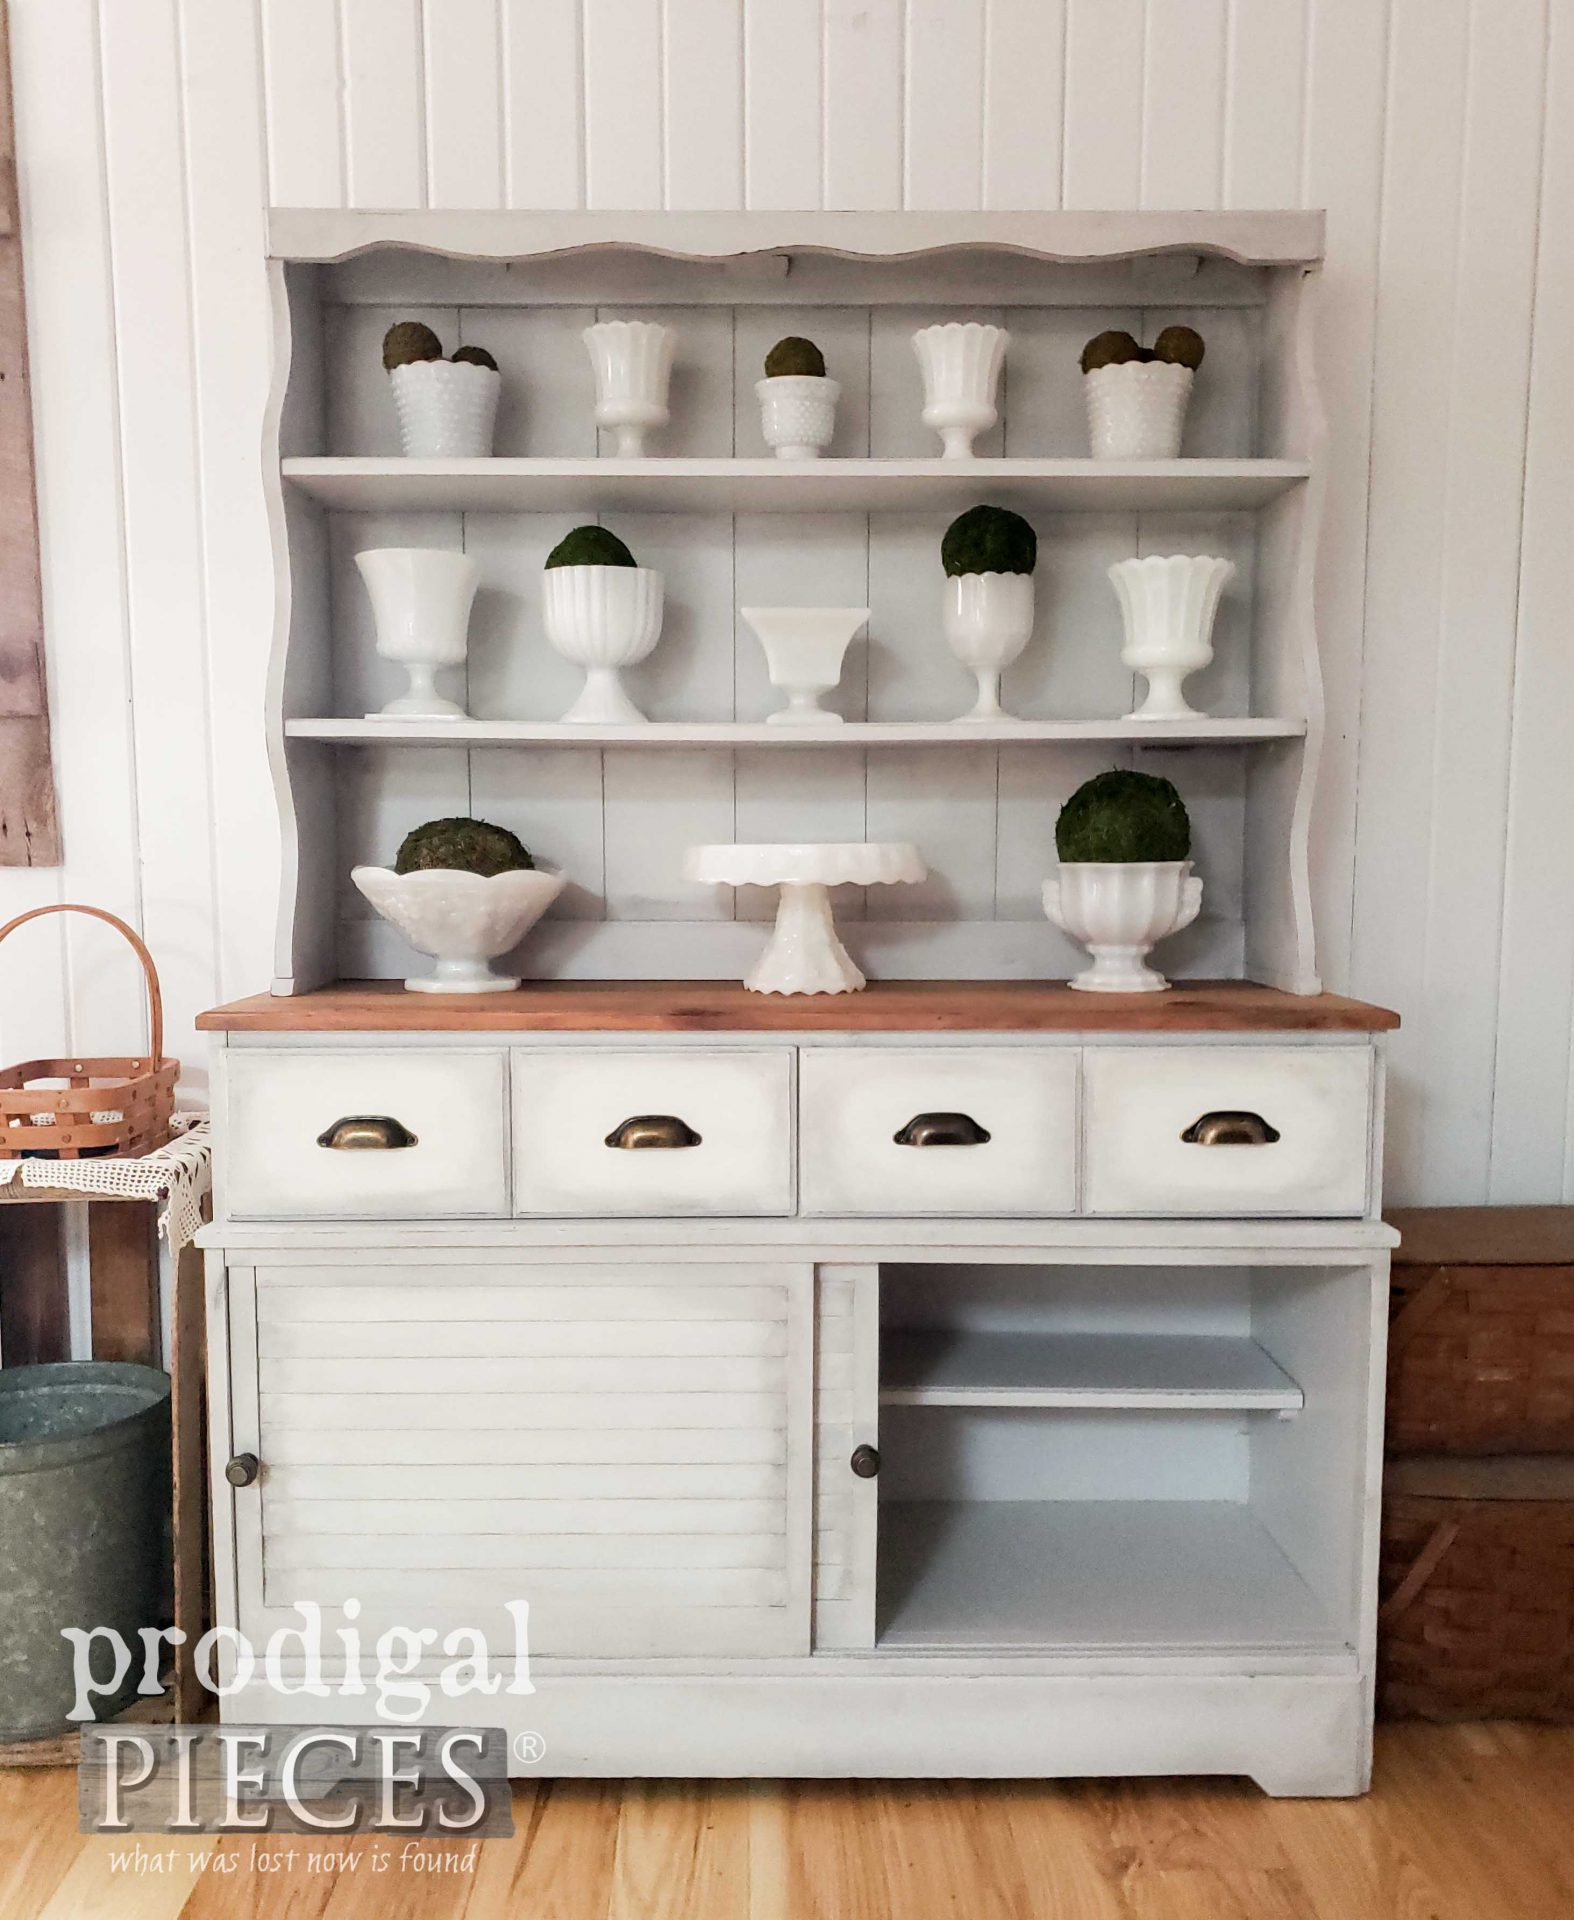 Rustic Farmhouse Pine Hutch with Louver Doors by Larissa of Prodigal Pieces | prodigalpieces.com #prodigalpieces #farmhouse #home #homedecor #furniture